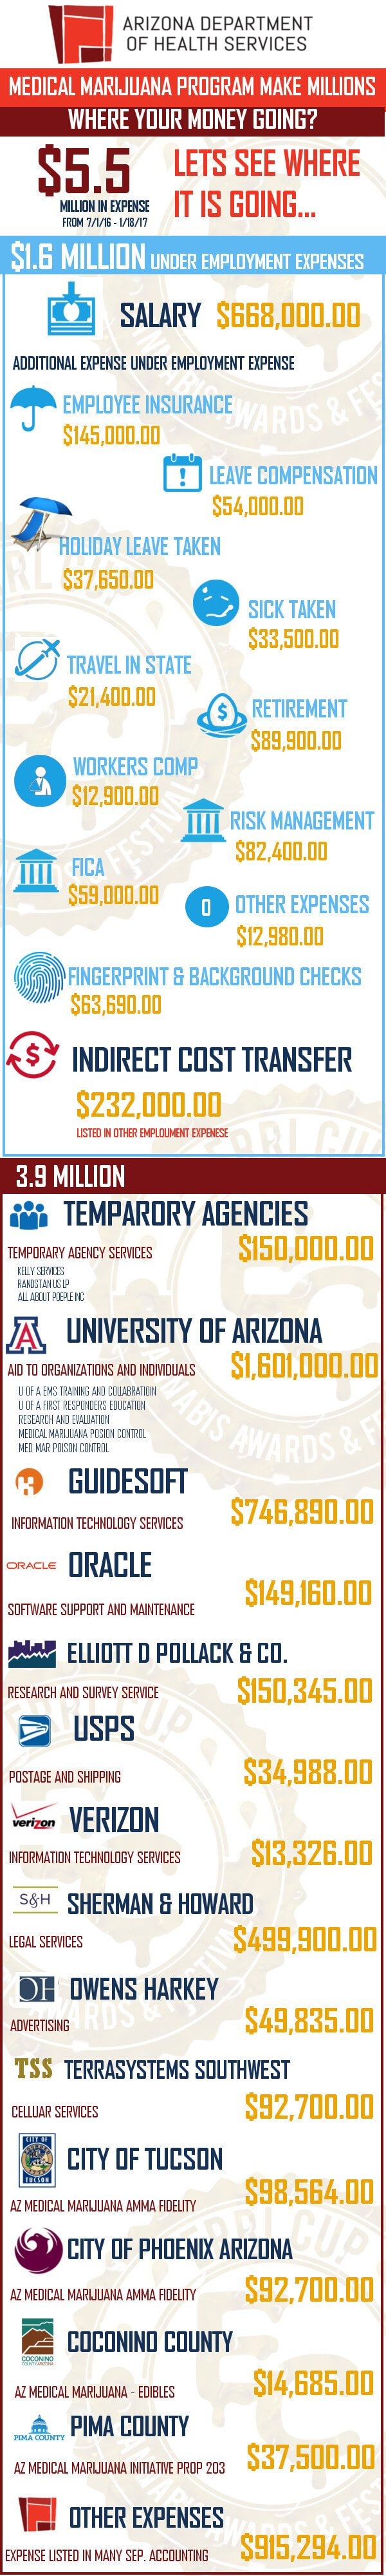 azdhs expense costs